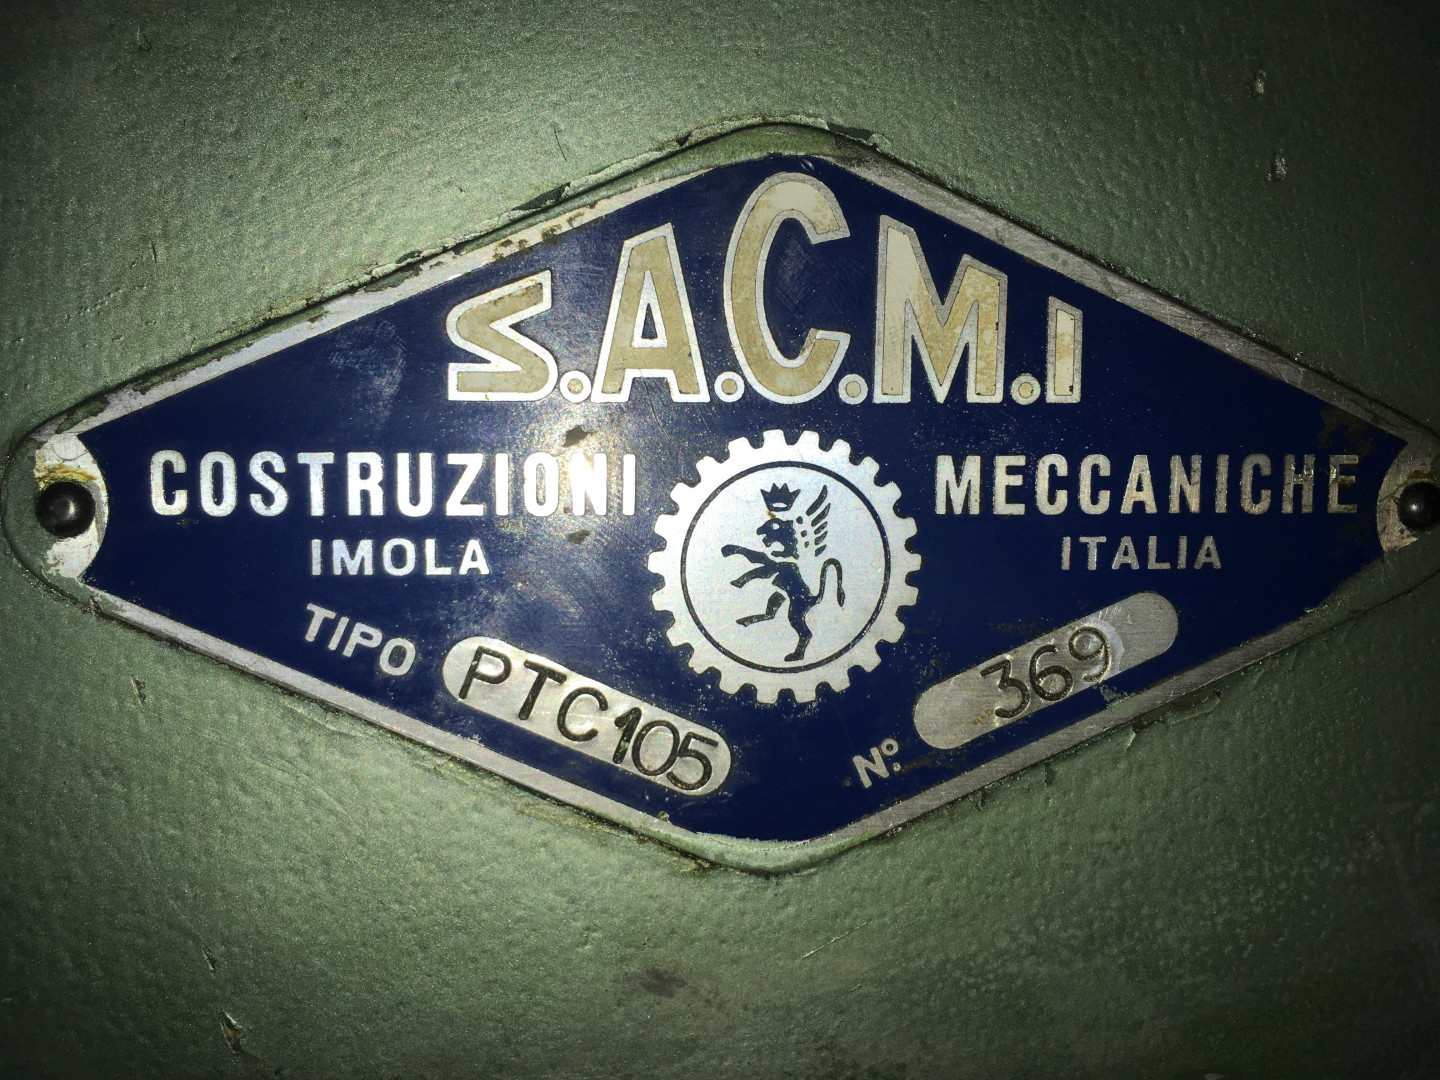 Sacmi press identification plate